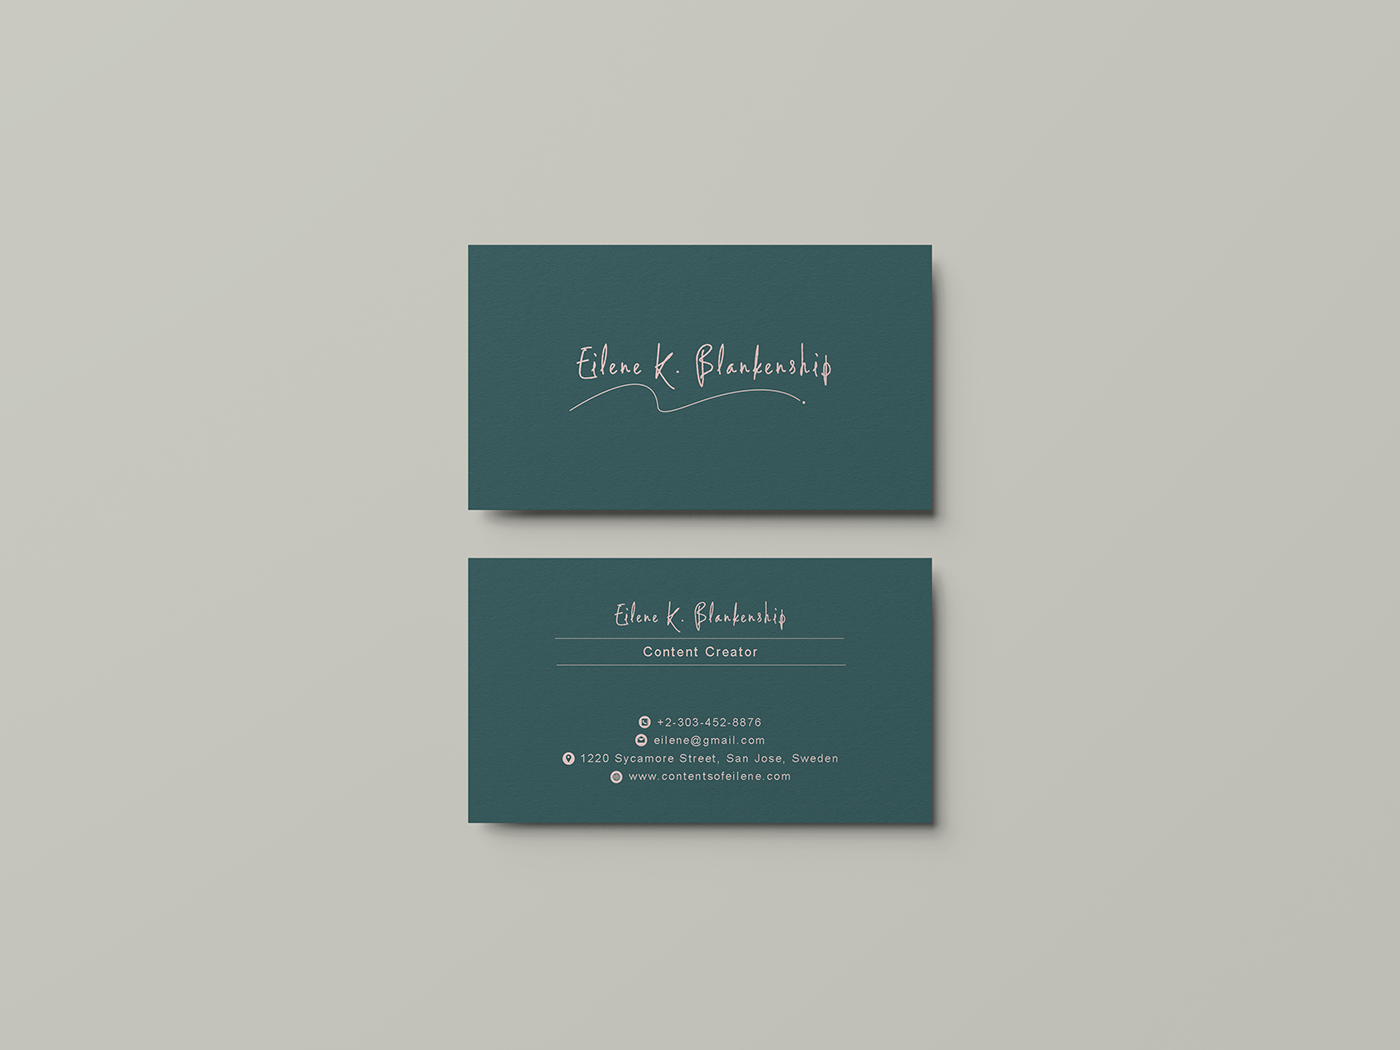 business card for content creator on behance